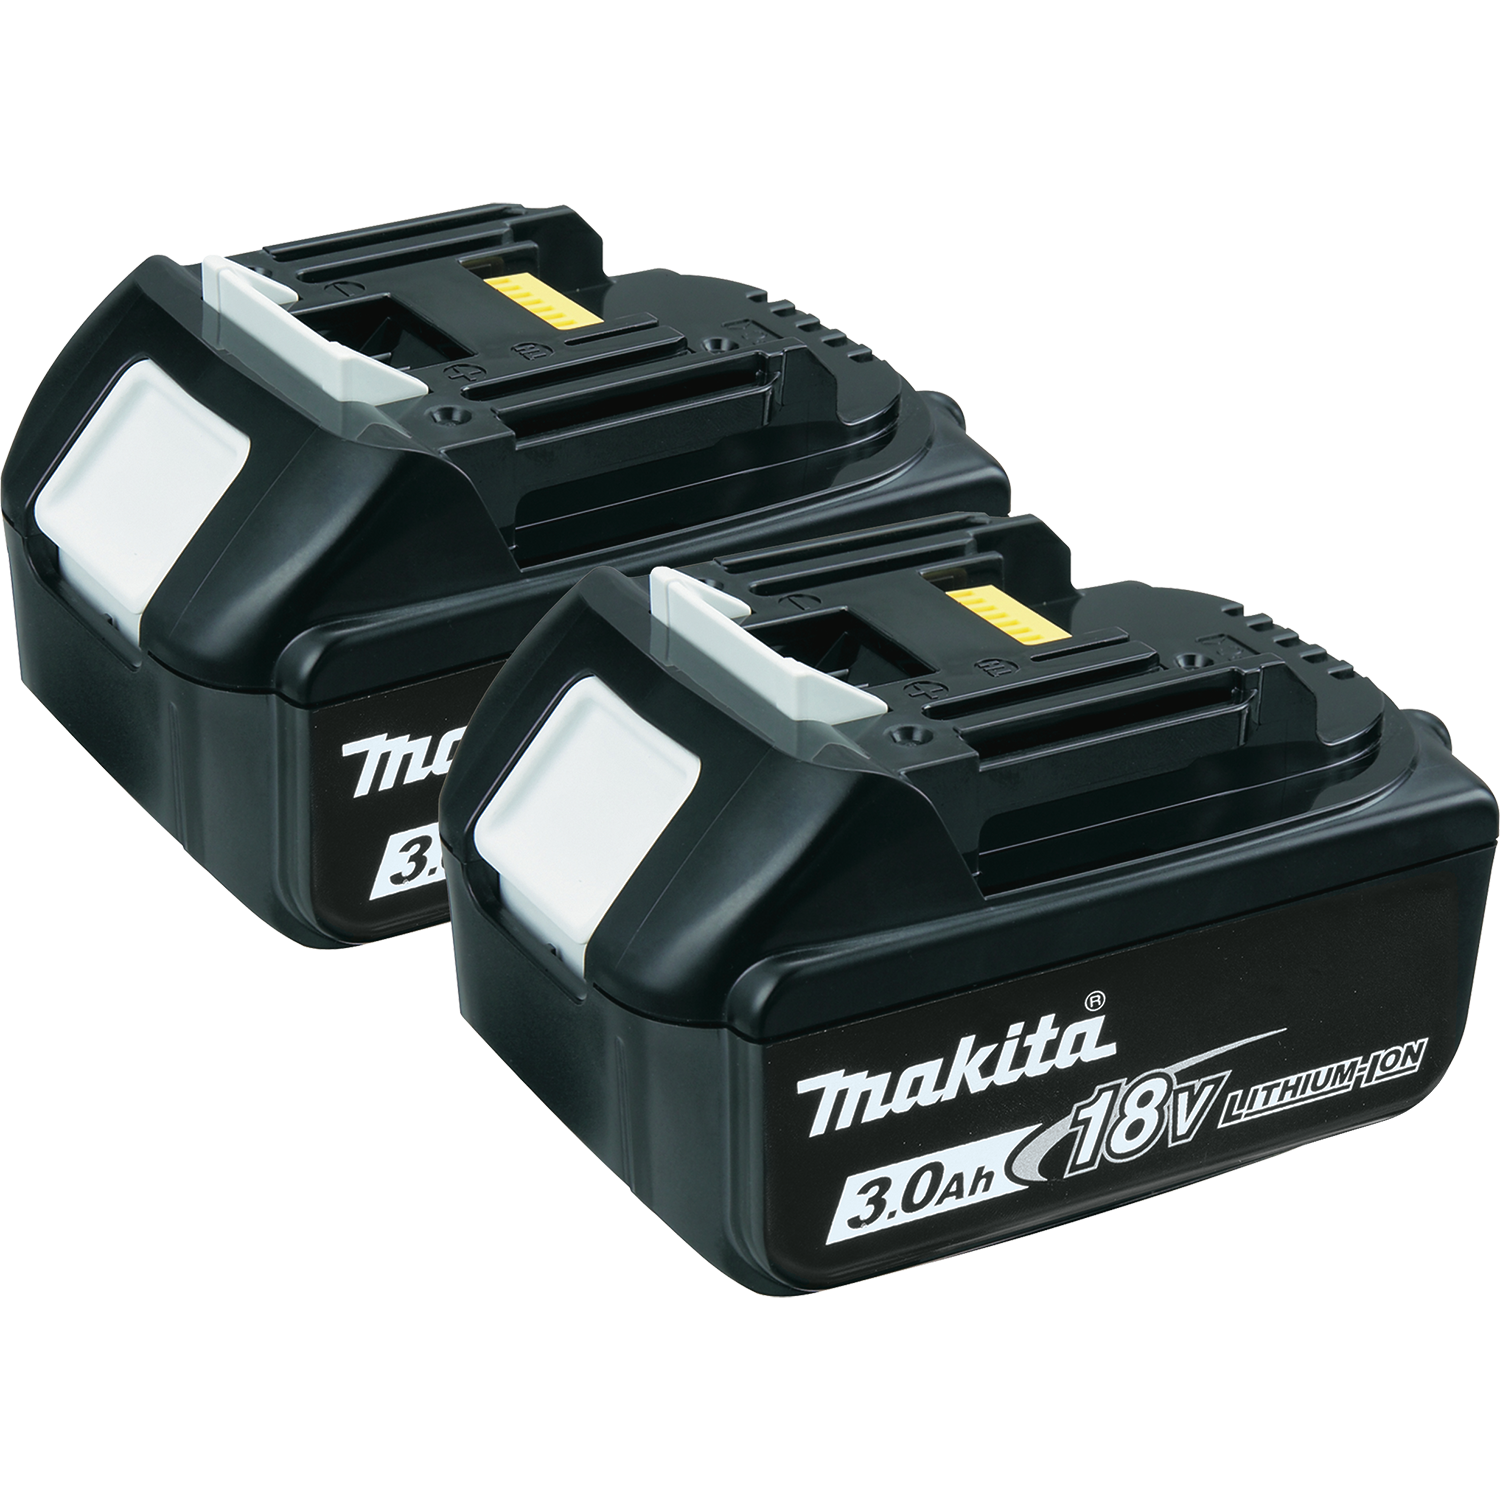 81fe265c 4ec1 41c3 957c a20d5f3d8fec_bl1830 2_p_1500px makita usa product details bl1830 2  at edmiracle.co